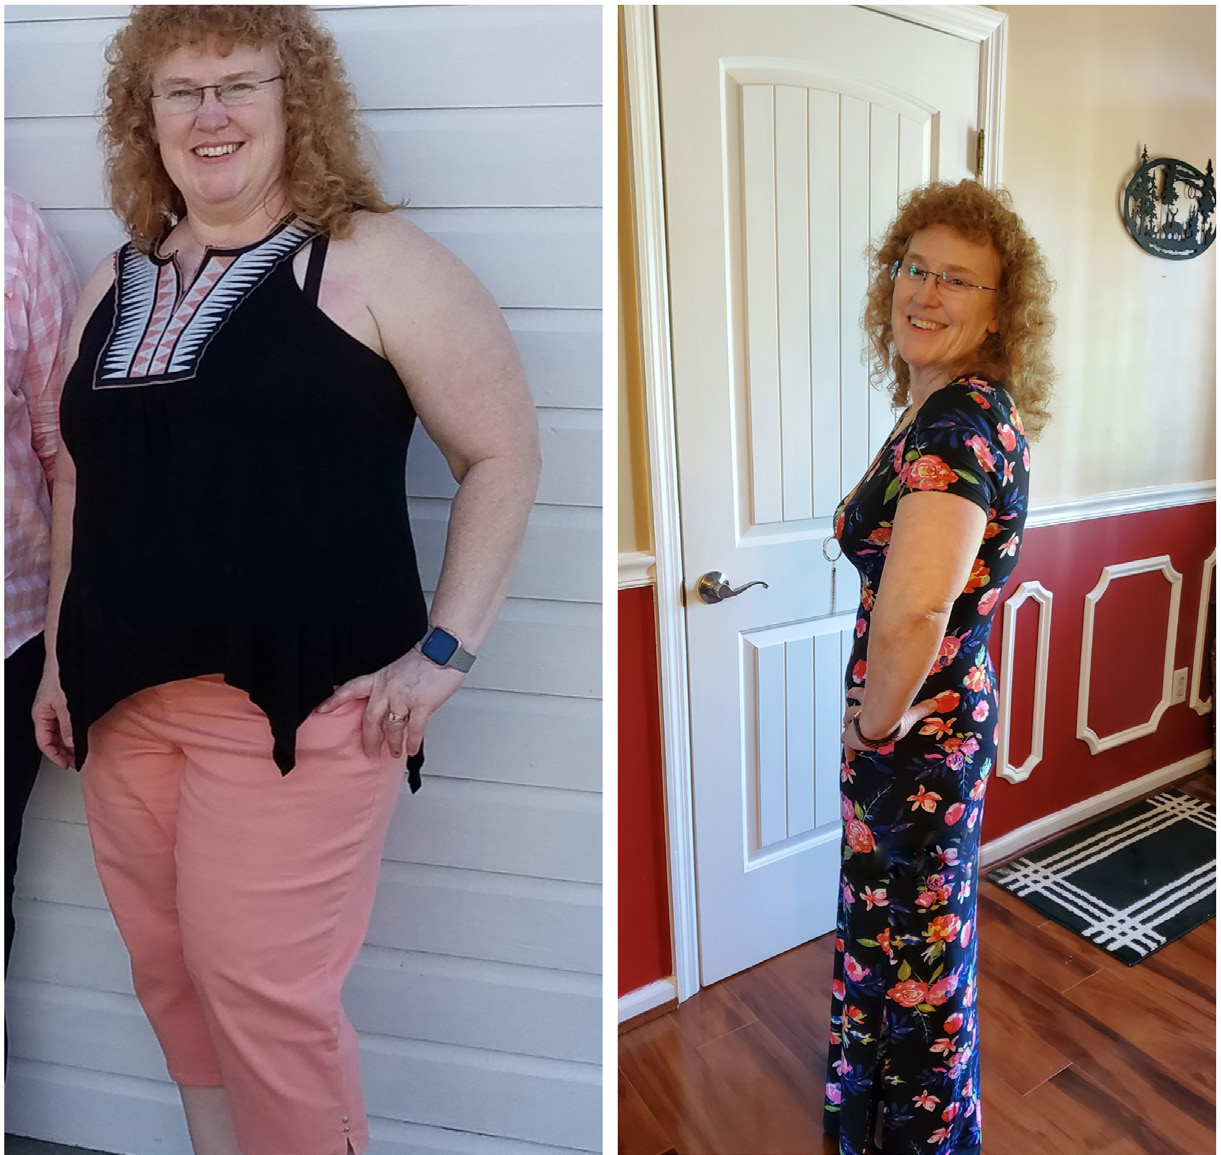 Lori N. before and after her weight loss surgery.